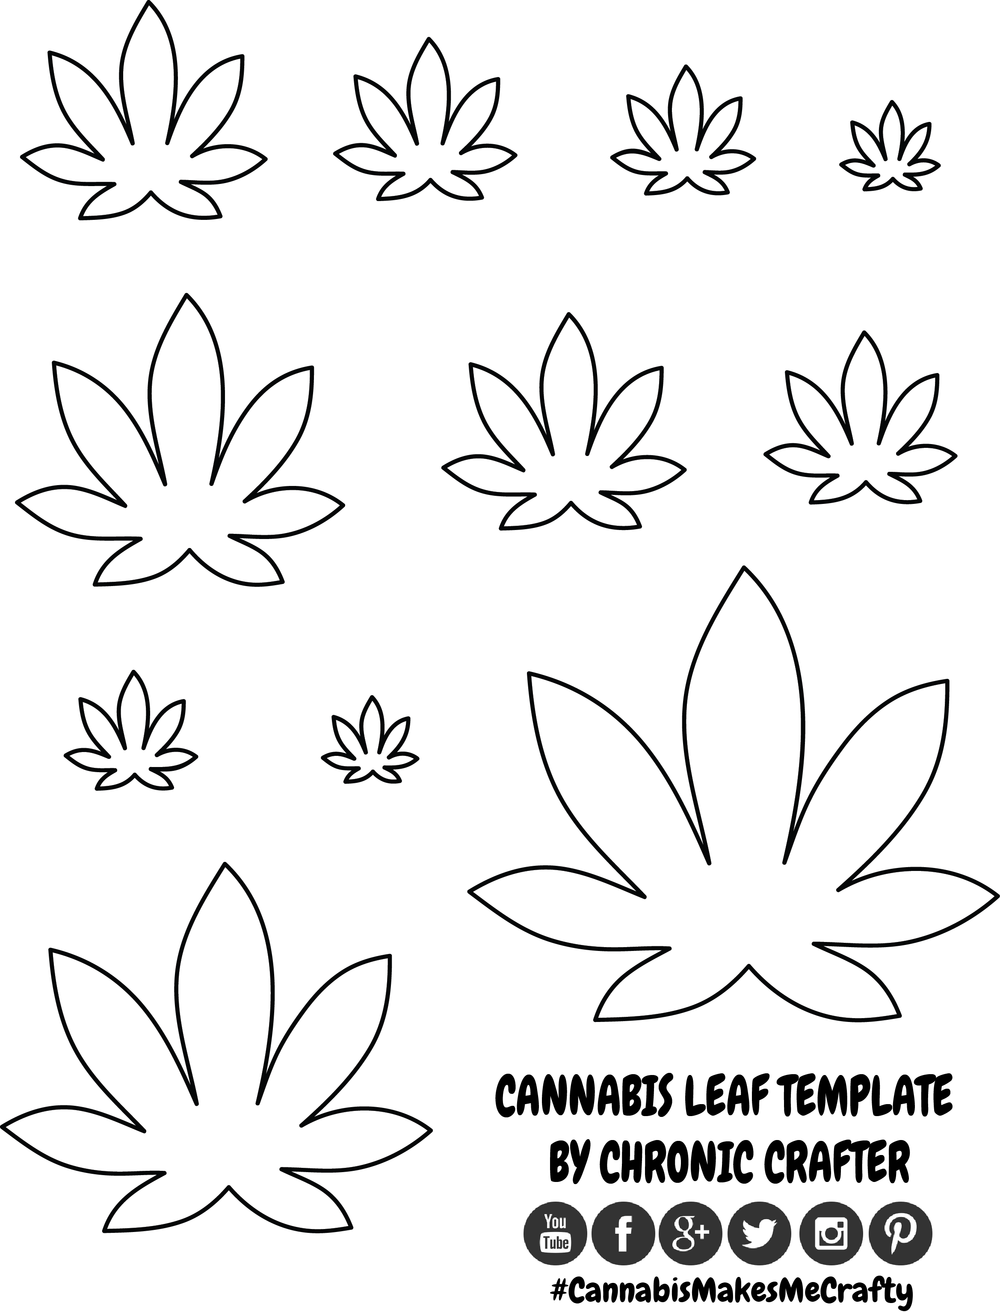 Cannabisleaftemplate